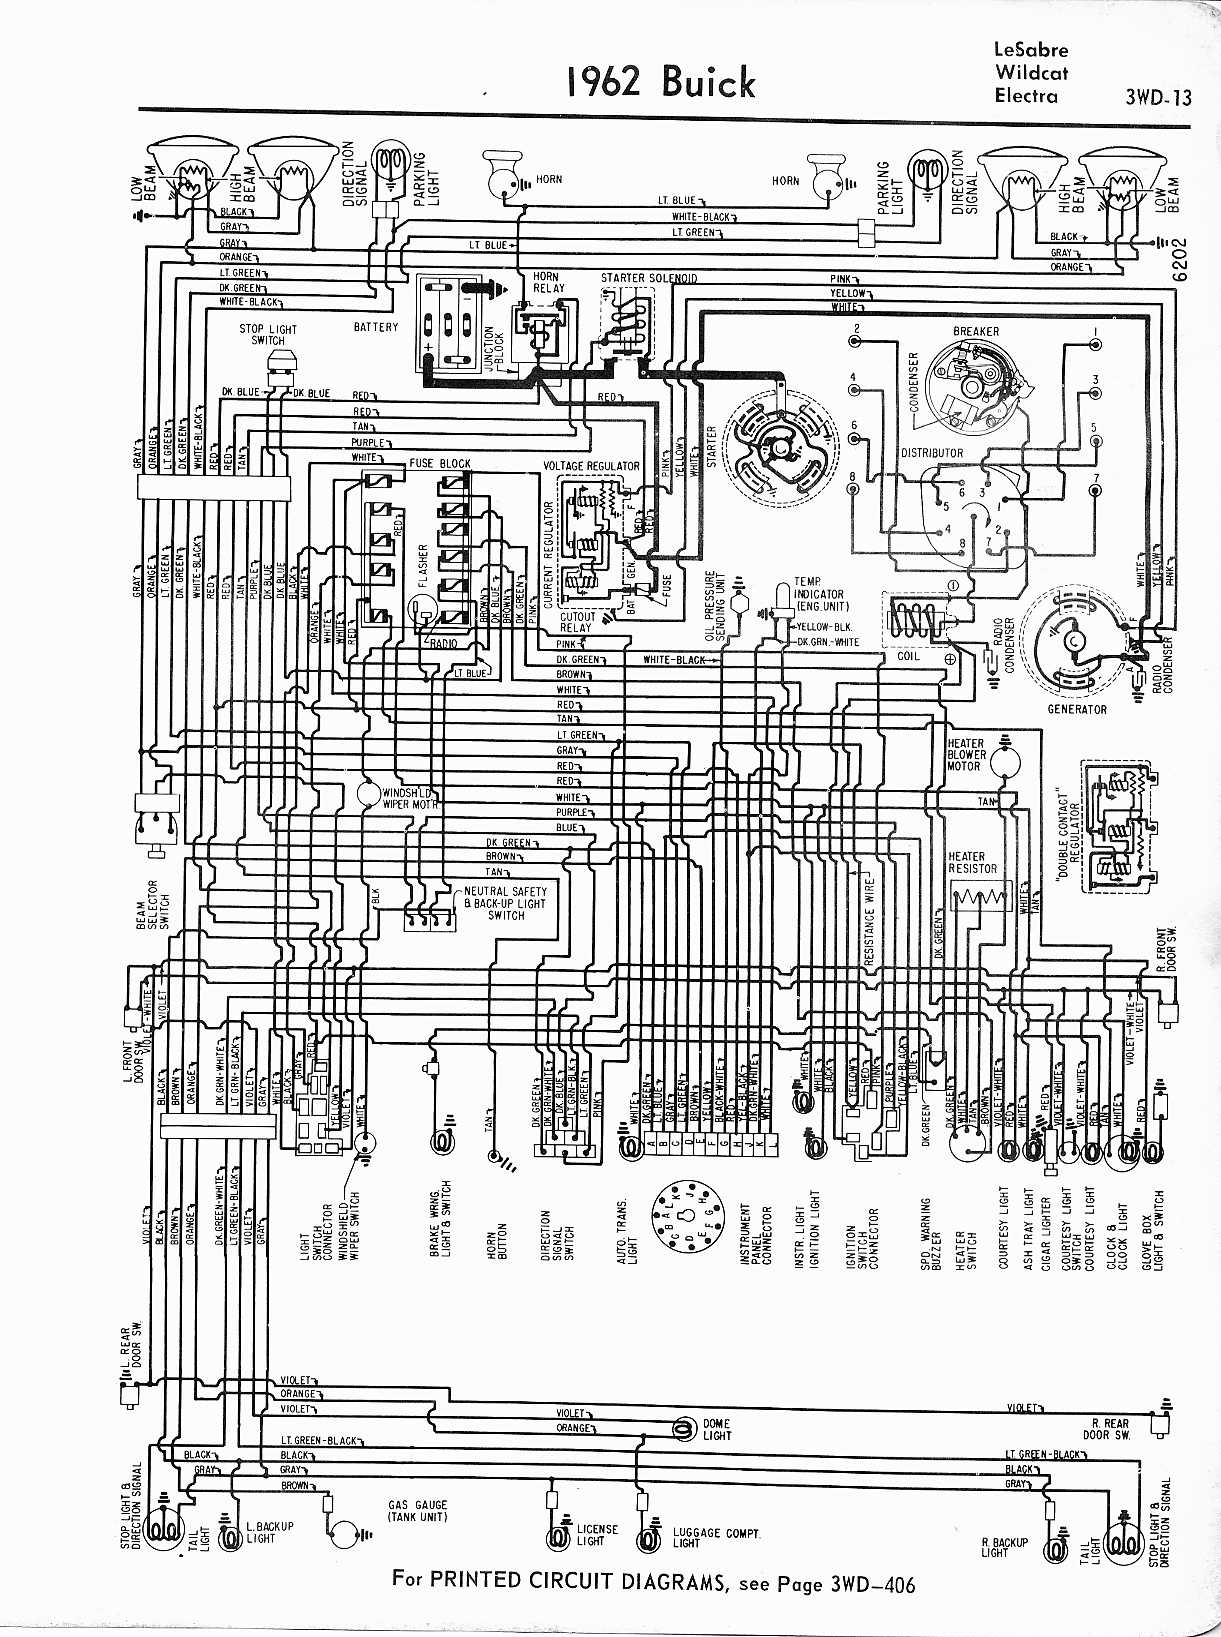 MWireBuic65_3WD 013 buick wiring diagrams 1957 1965 Basic Turn Signal Wiring Diagram at n-0.co